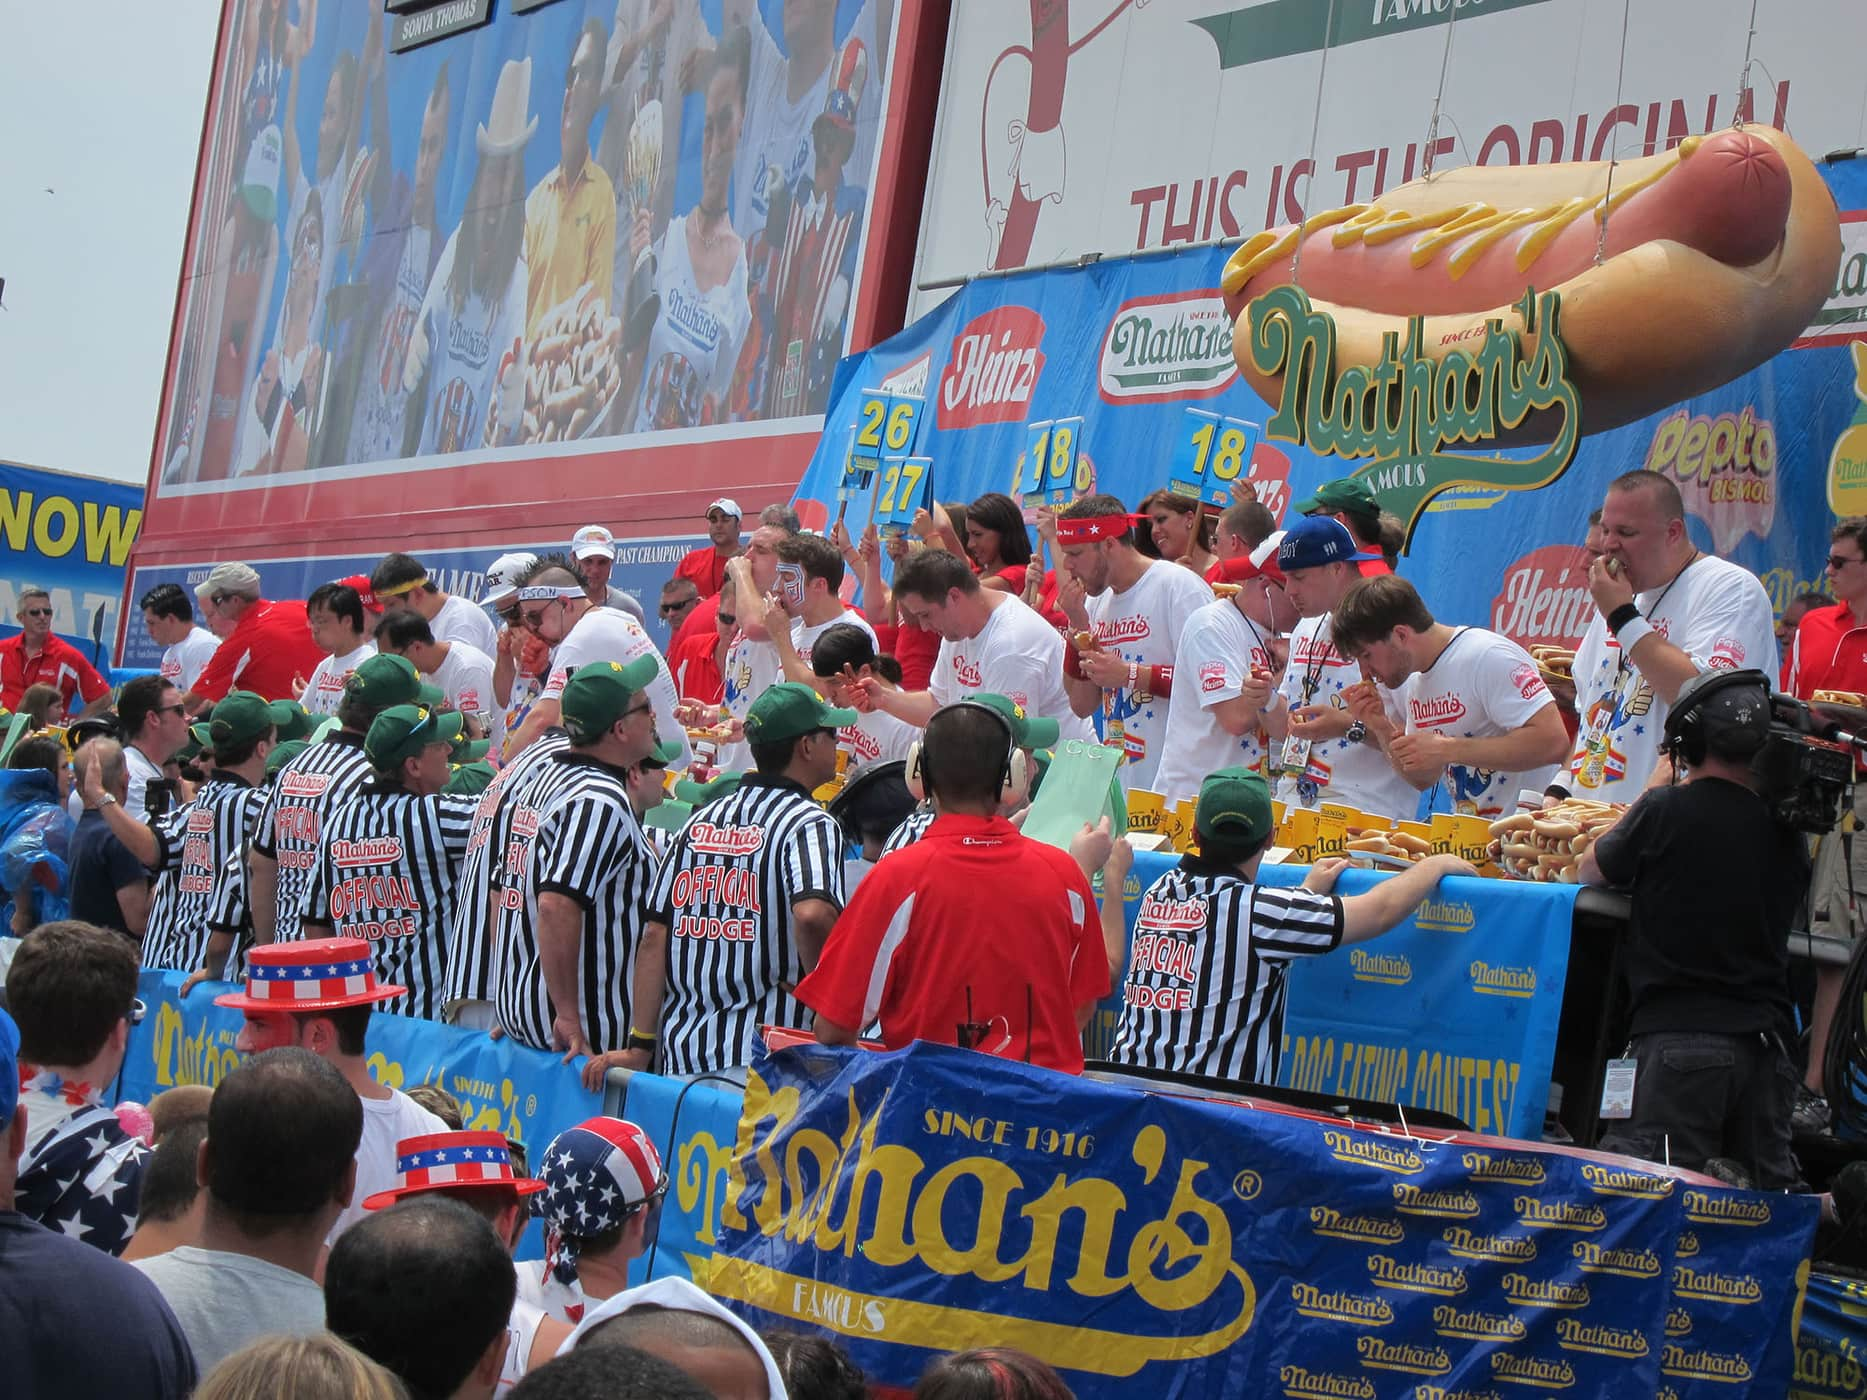 Tim Gravy Brown chokes at the July 4th hot dog eating contest